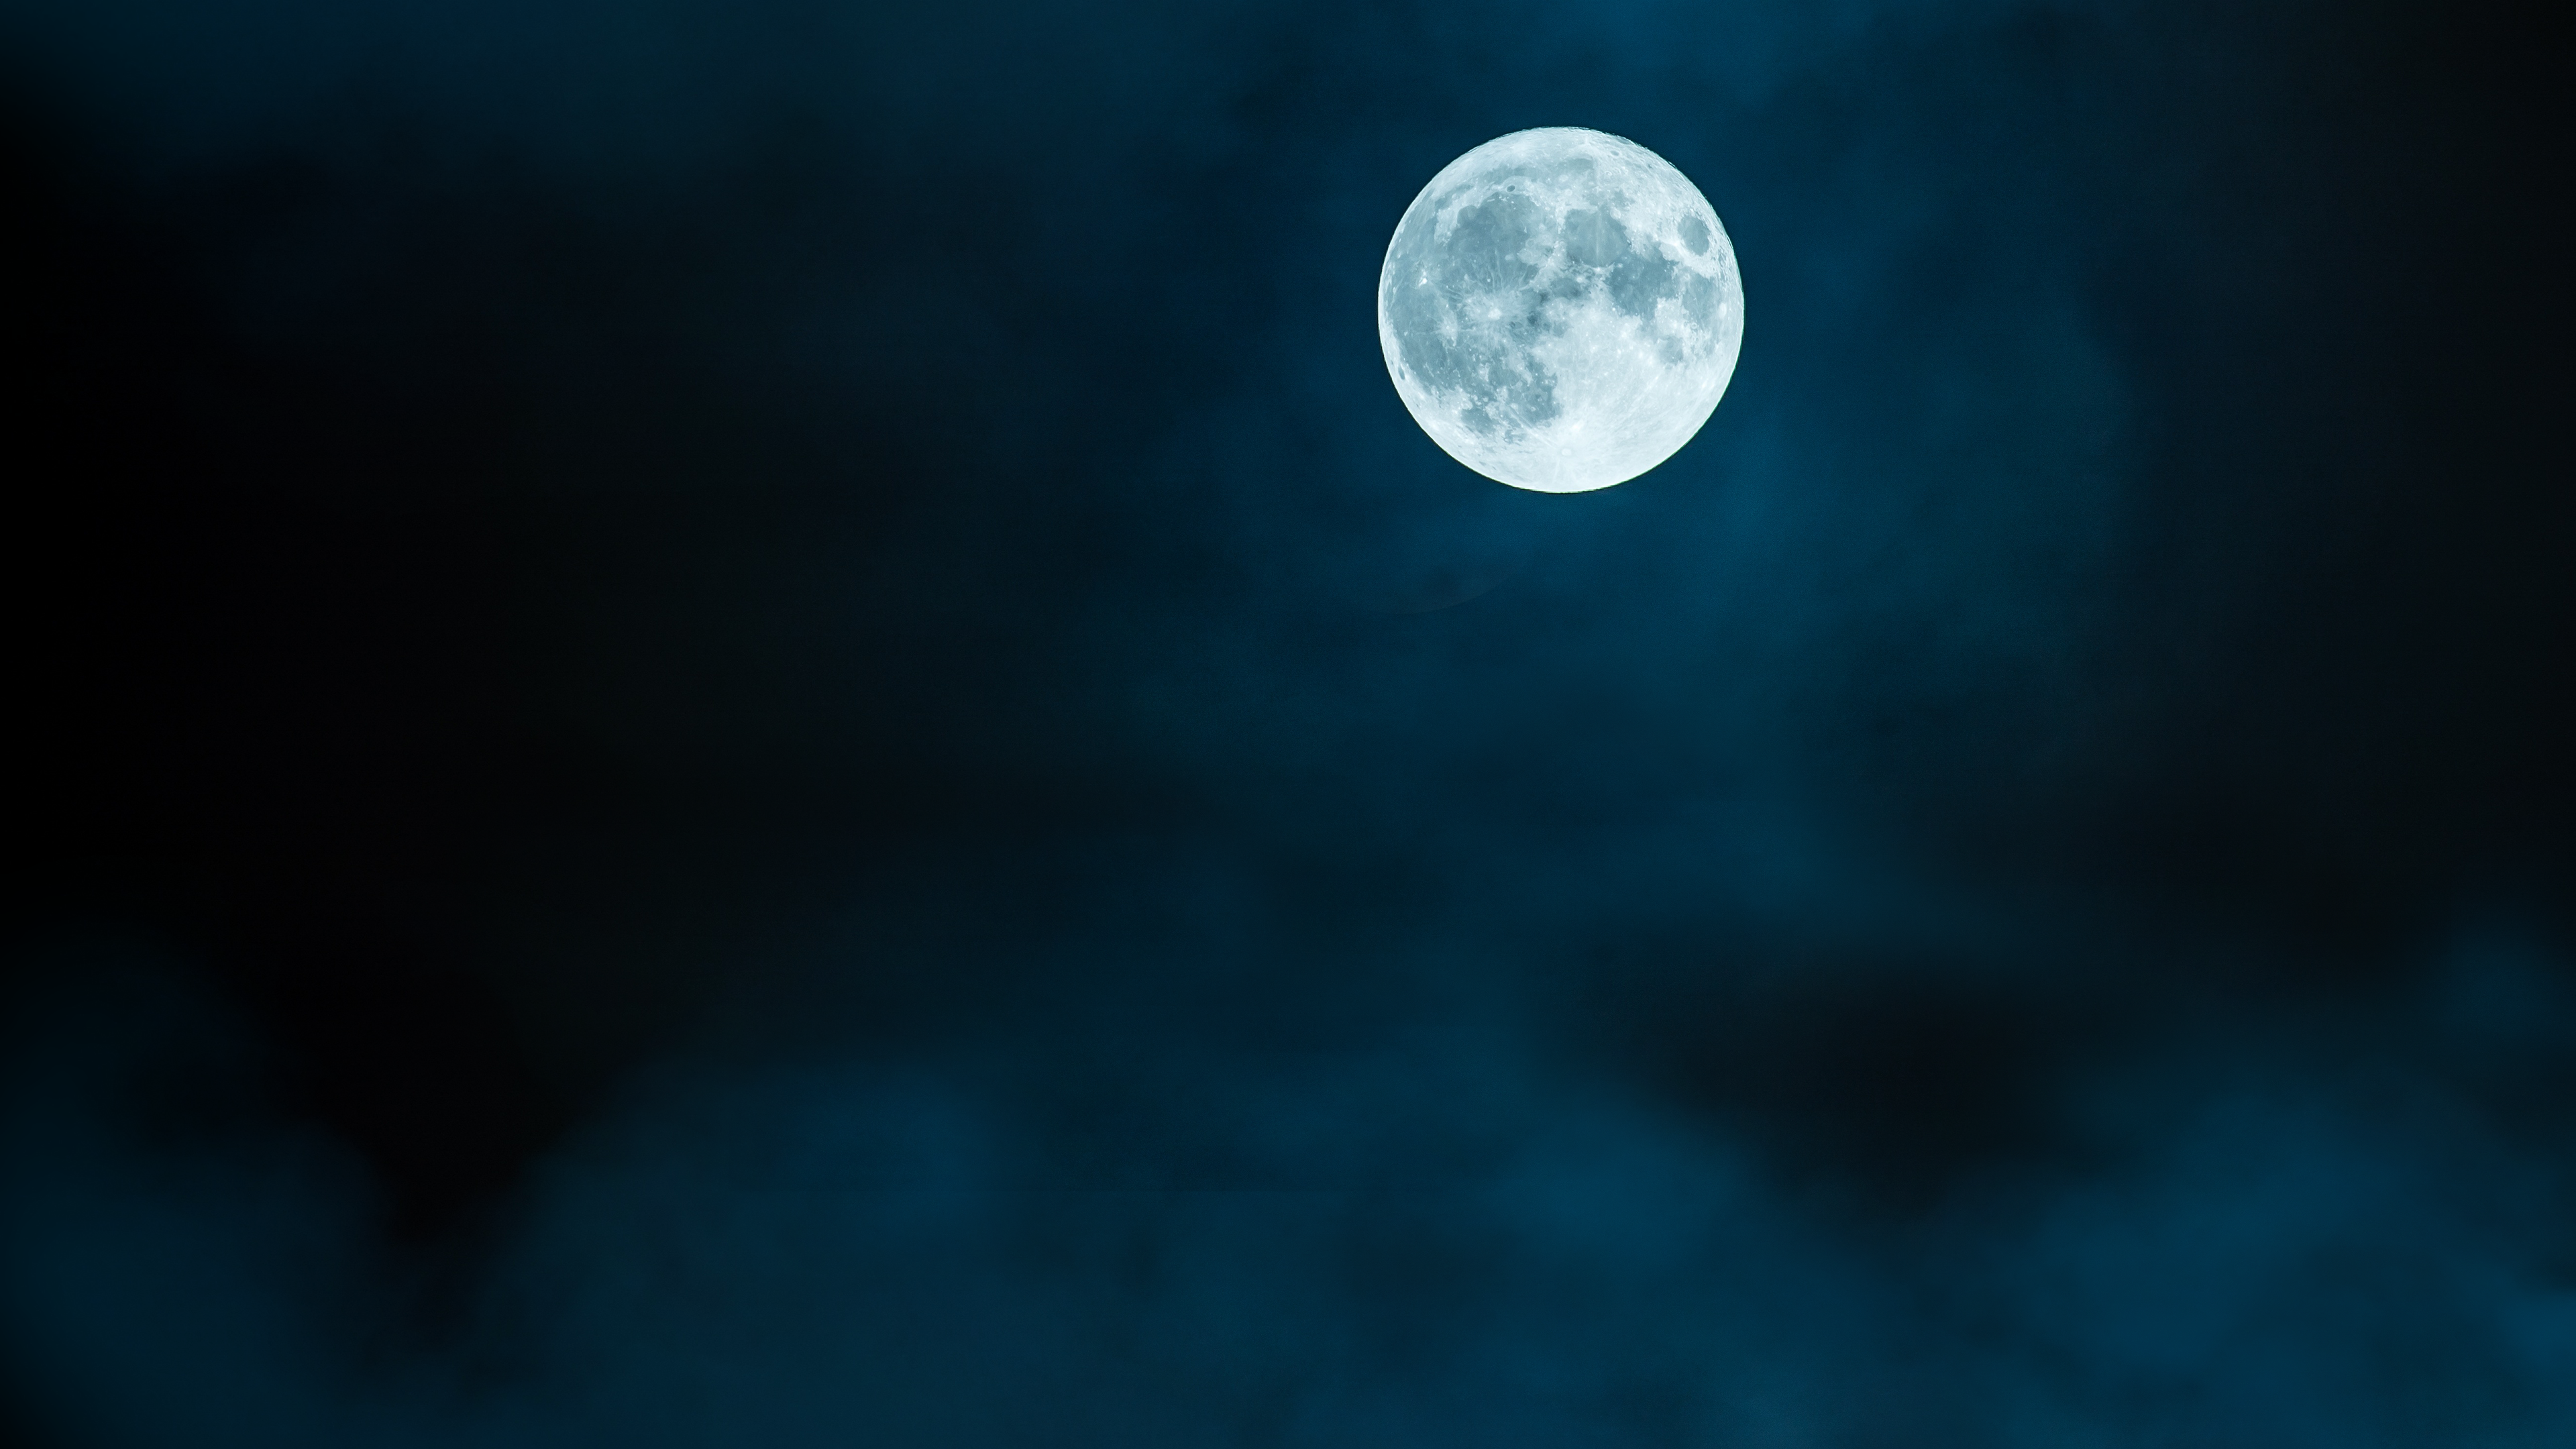 download free hd full moon desktop wallpaper in 4k 0205